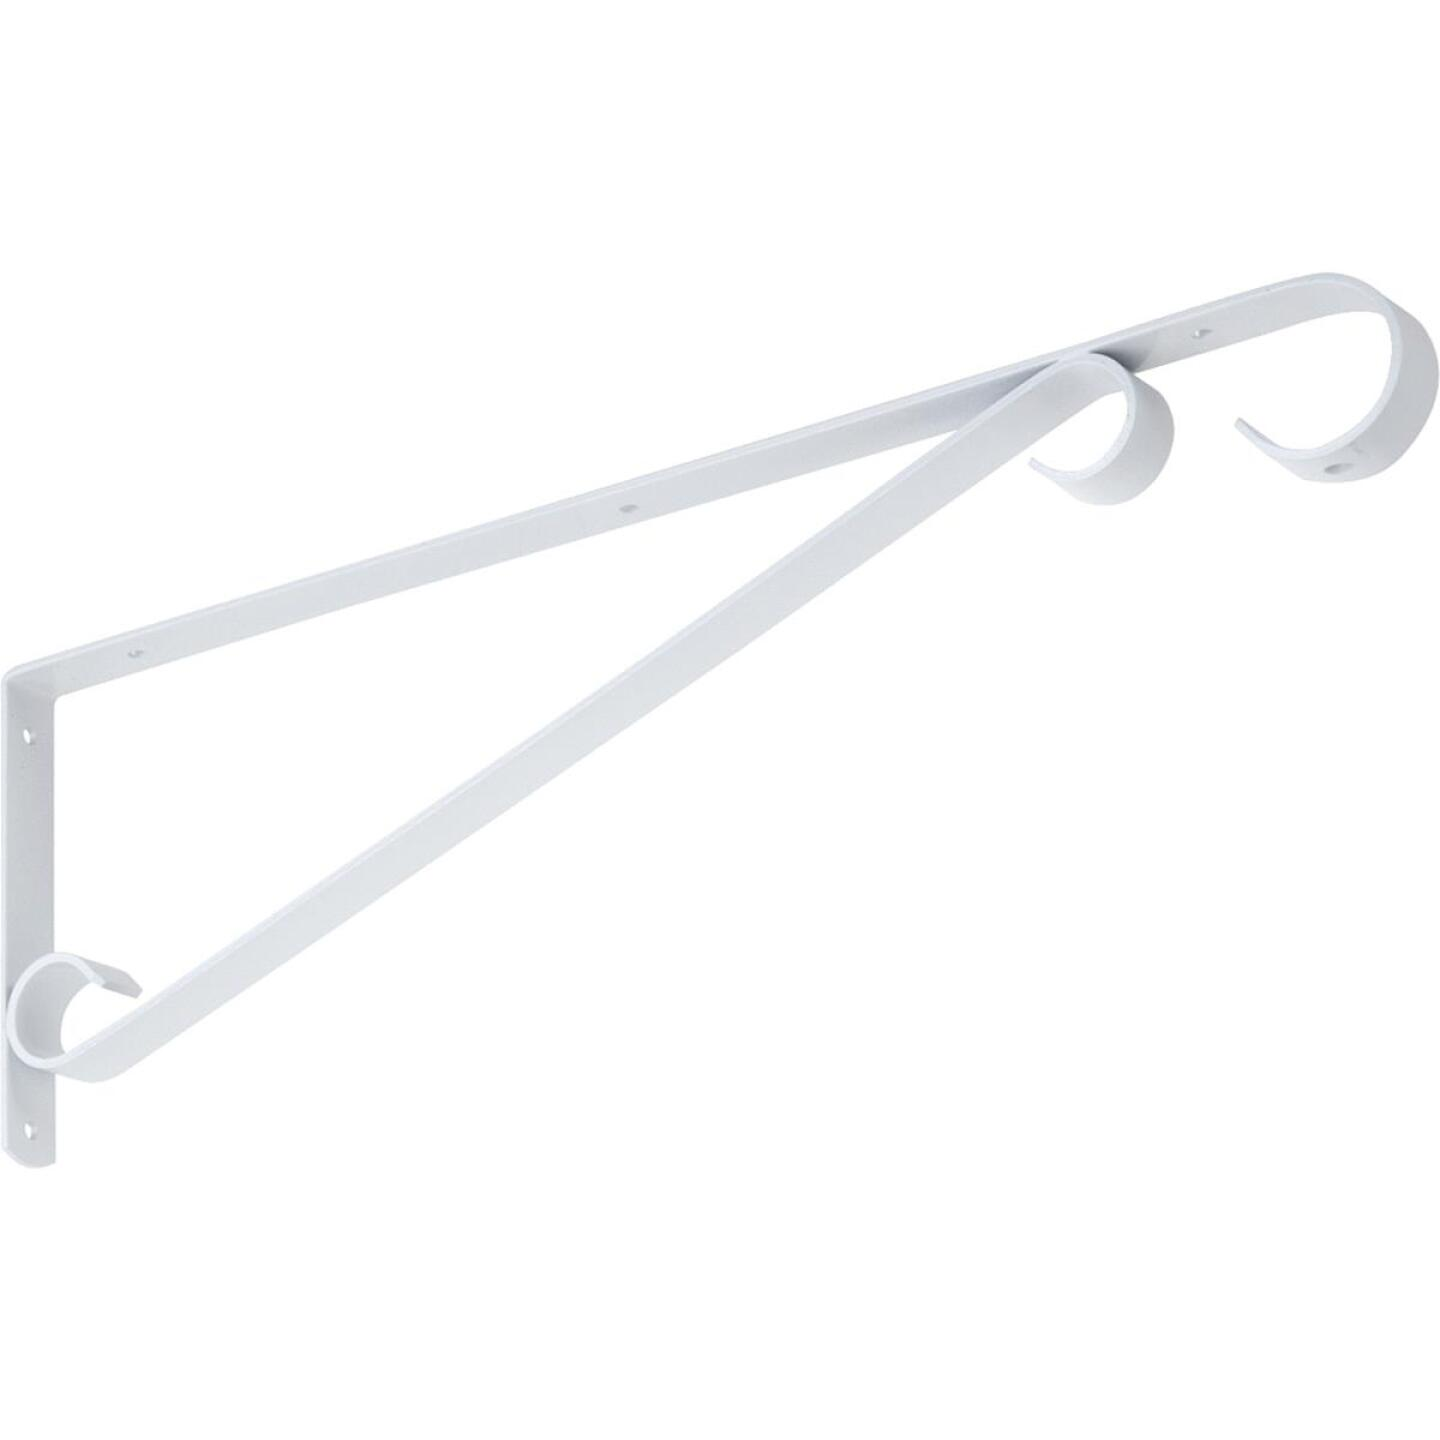 National 15 In. White Steel Hanging Plant Bracket Image 4